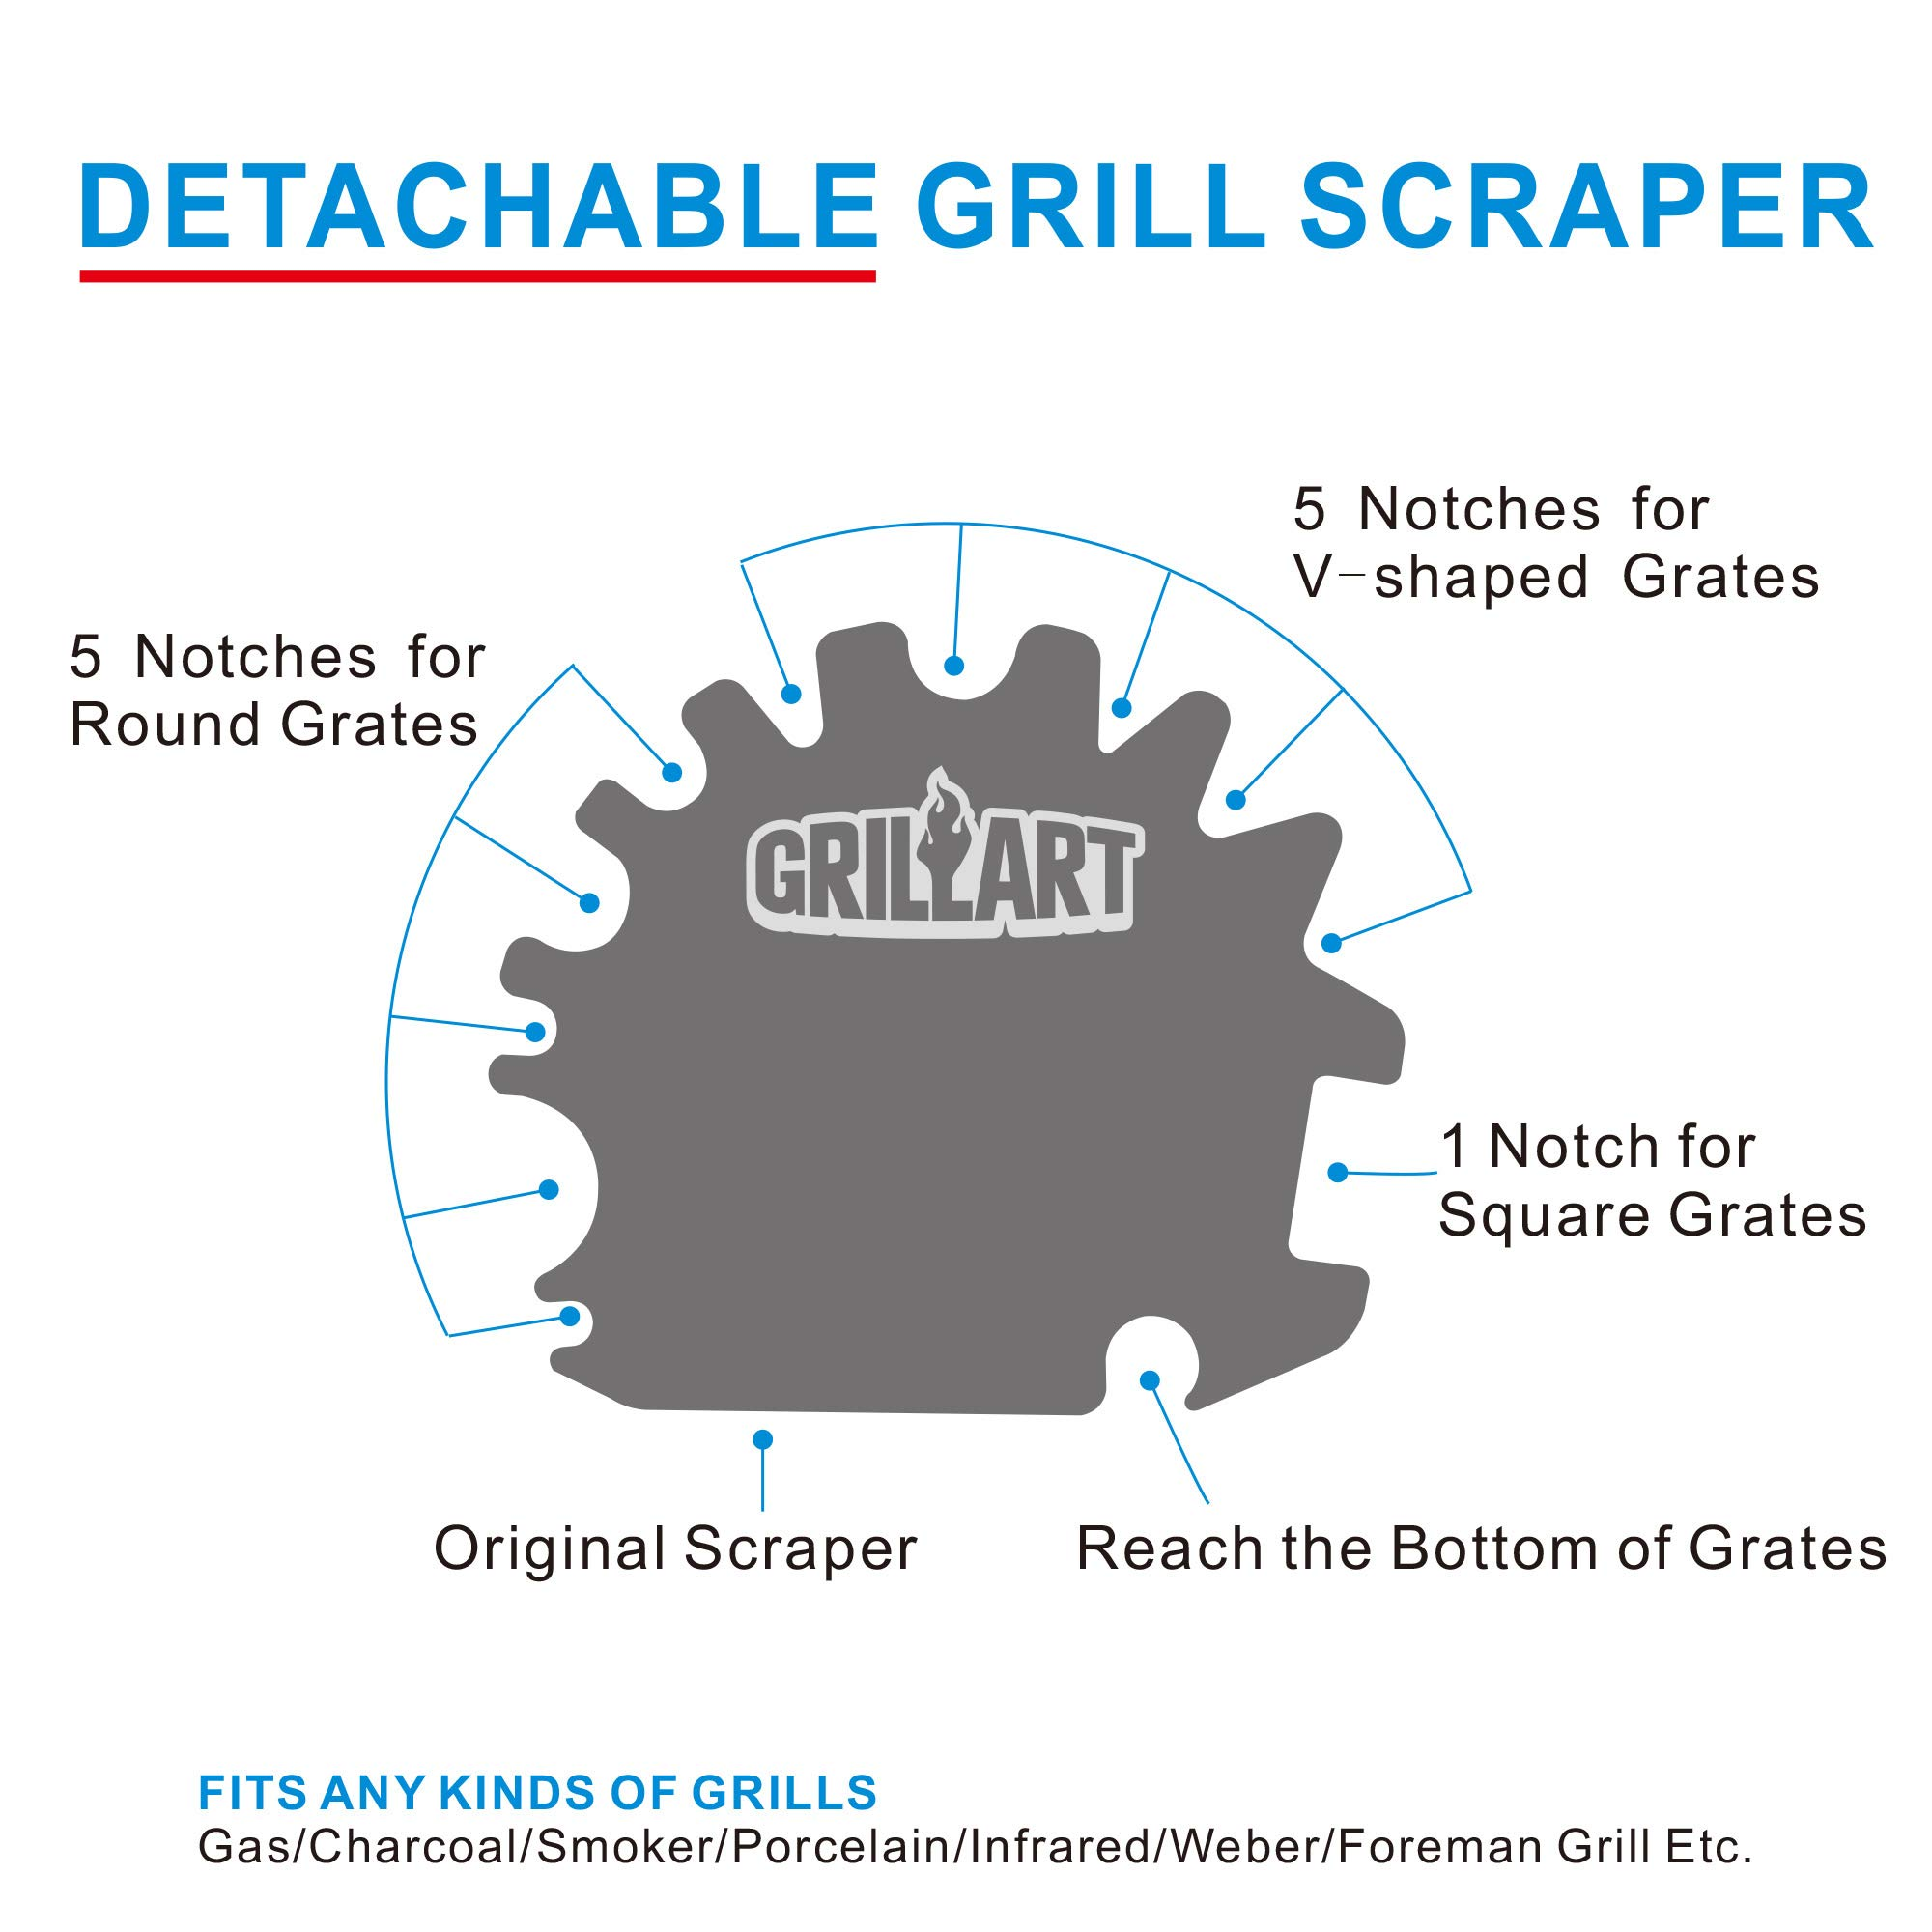 Grill Brush and Scraper Universal Fit - Adjustable BBQ Grill Accessories Cleaning Kit - 12 Grooves Safe 18'' Stainless Steel Barbecue Grill Cleaner Wizard Tools for Weber Gas/Charcoal Grilling Grates by GriIIArt (Image #3)